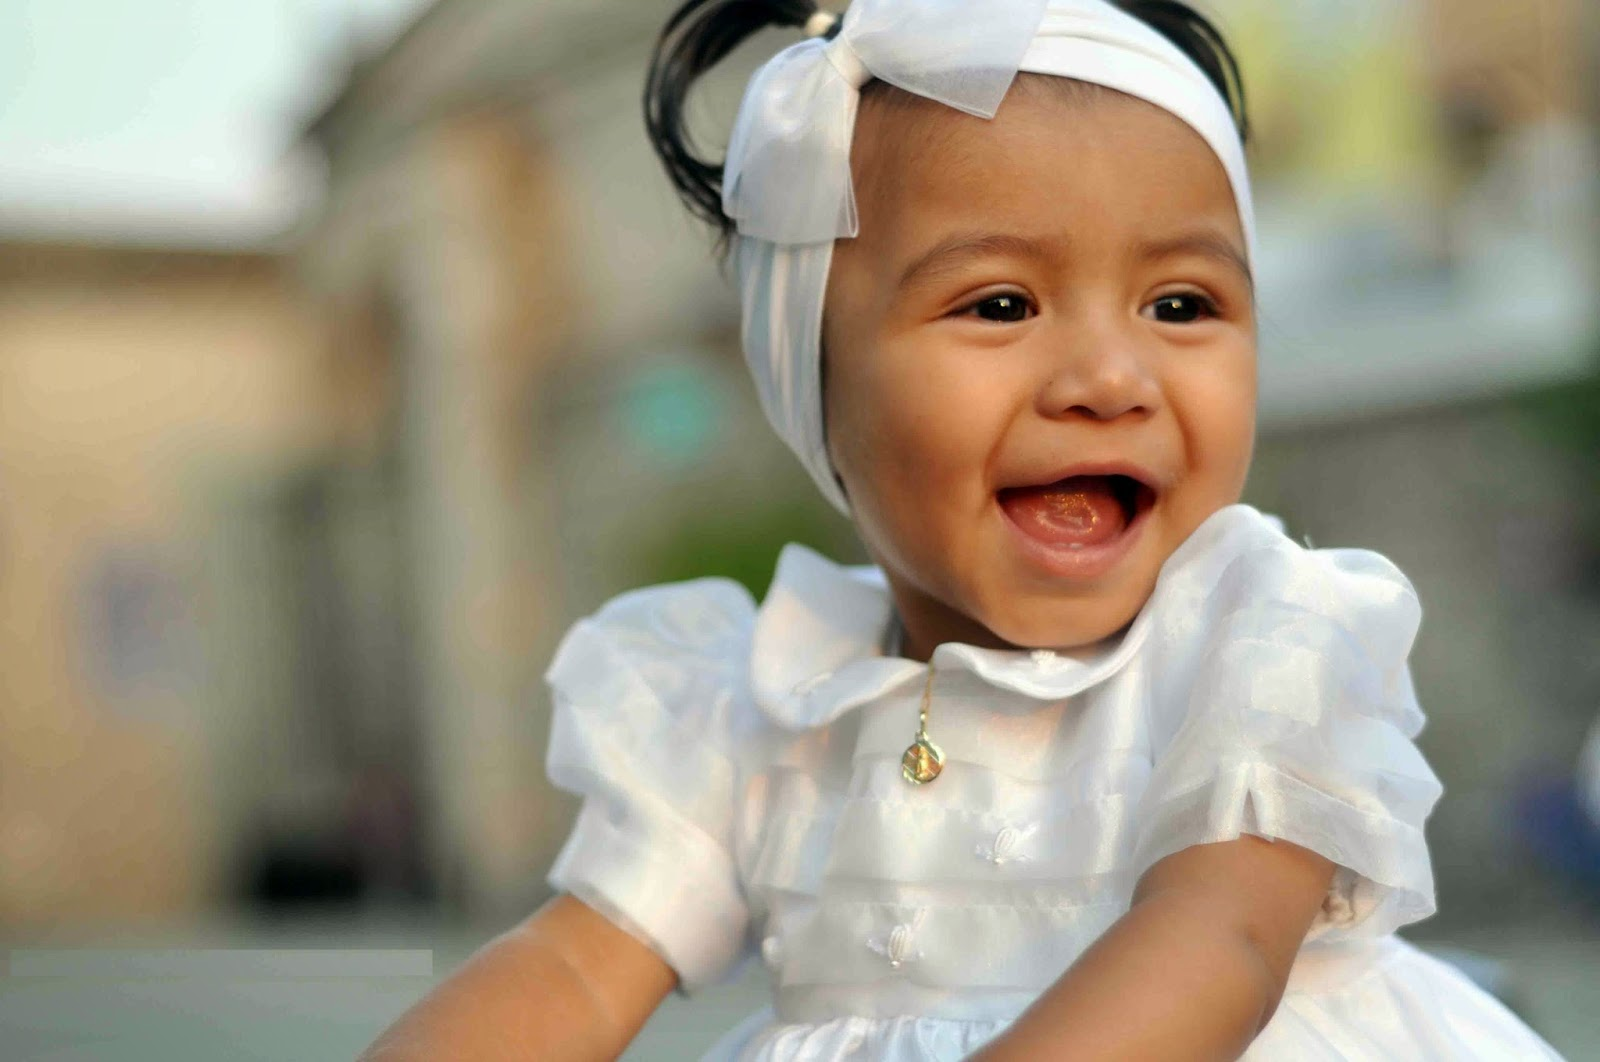 Happy and Cute Babies Images ~ Snipping World!